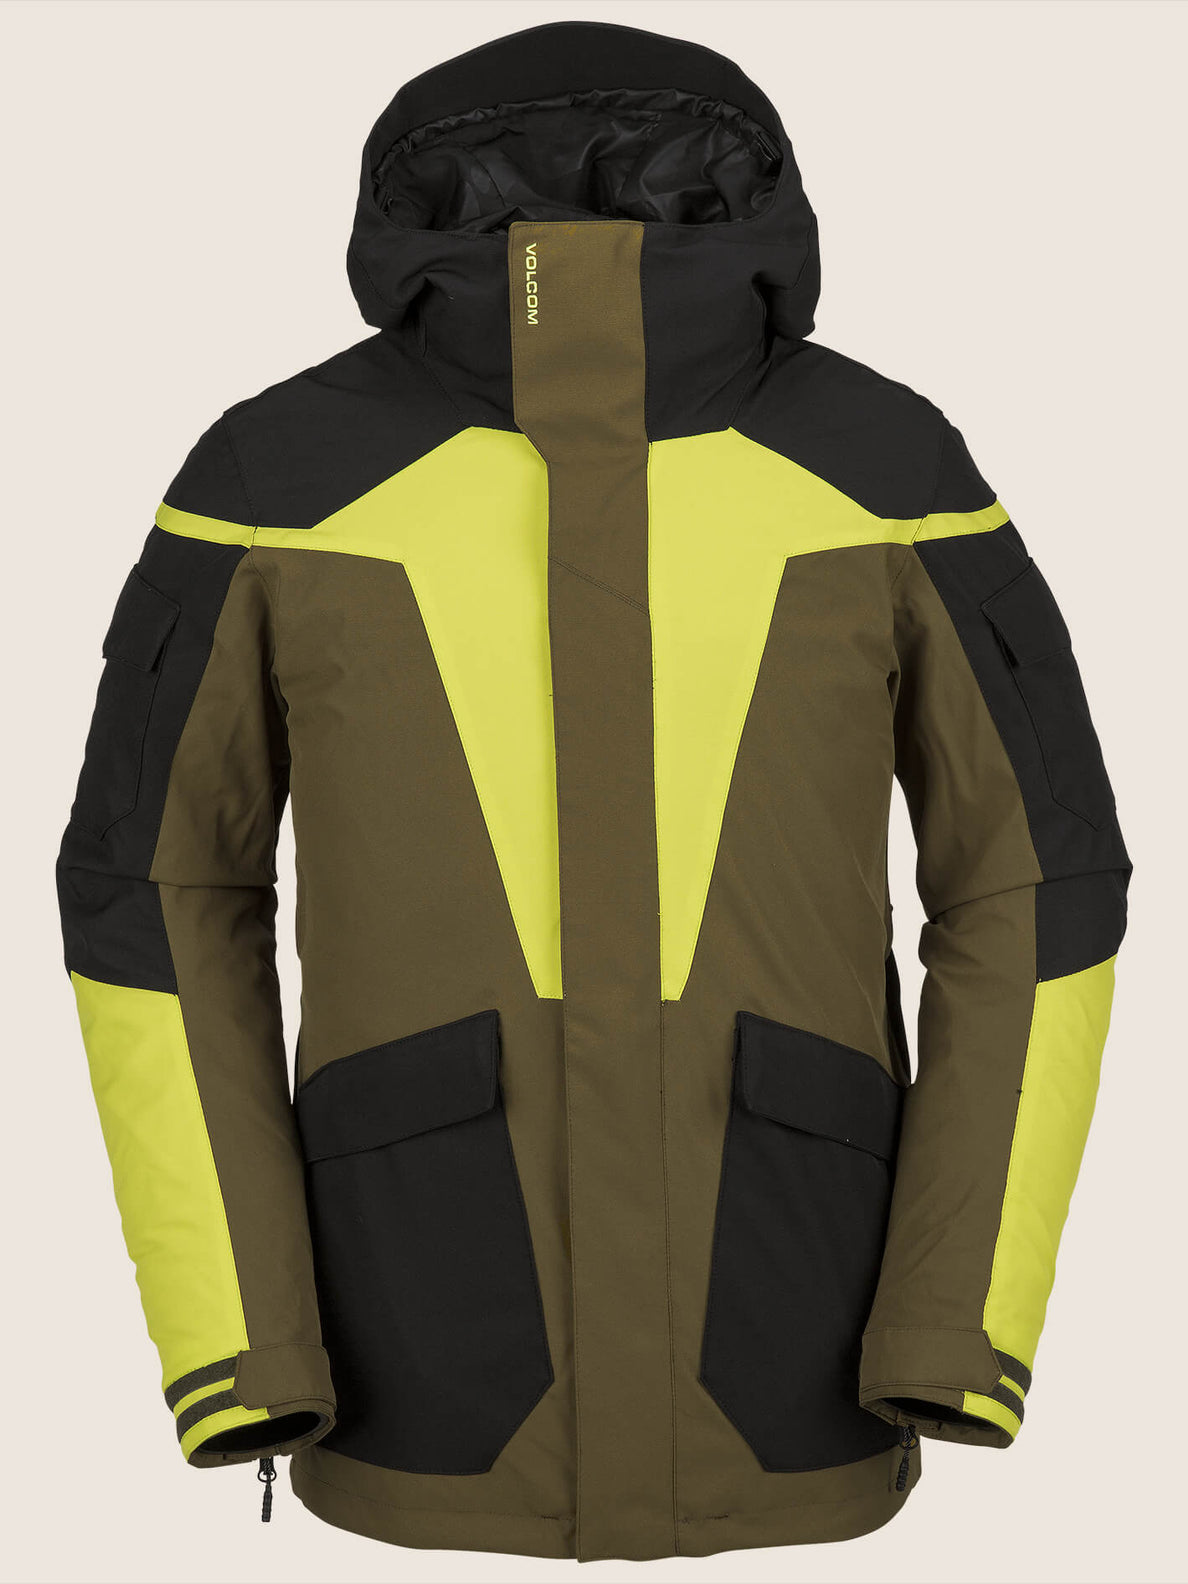 Utility Jacket In Moss, Front View